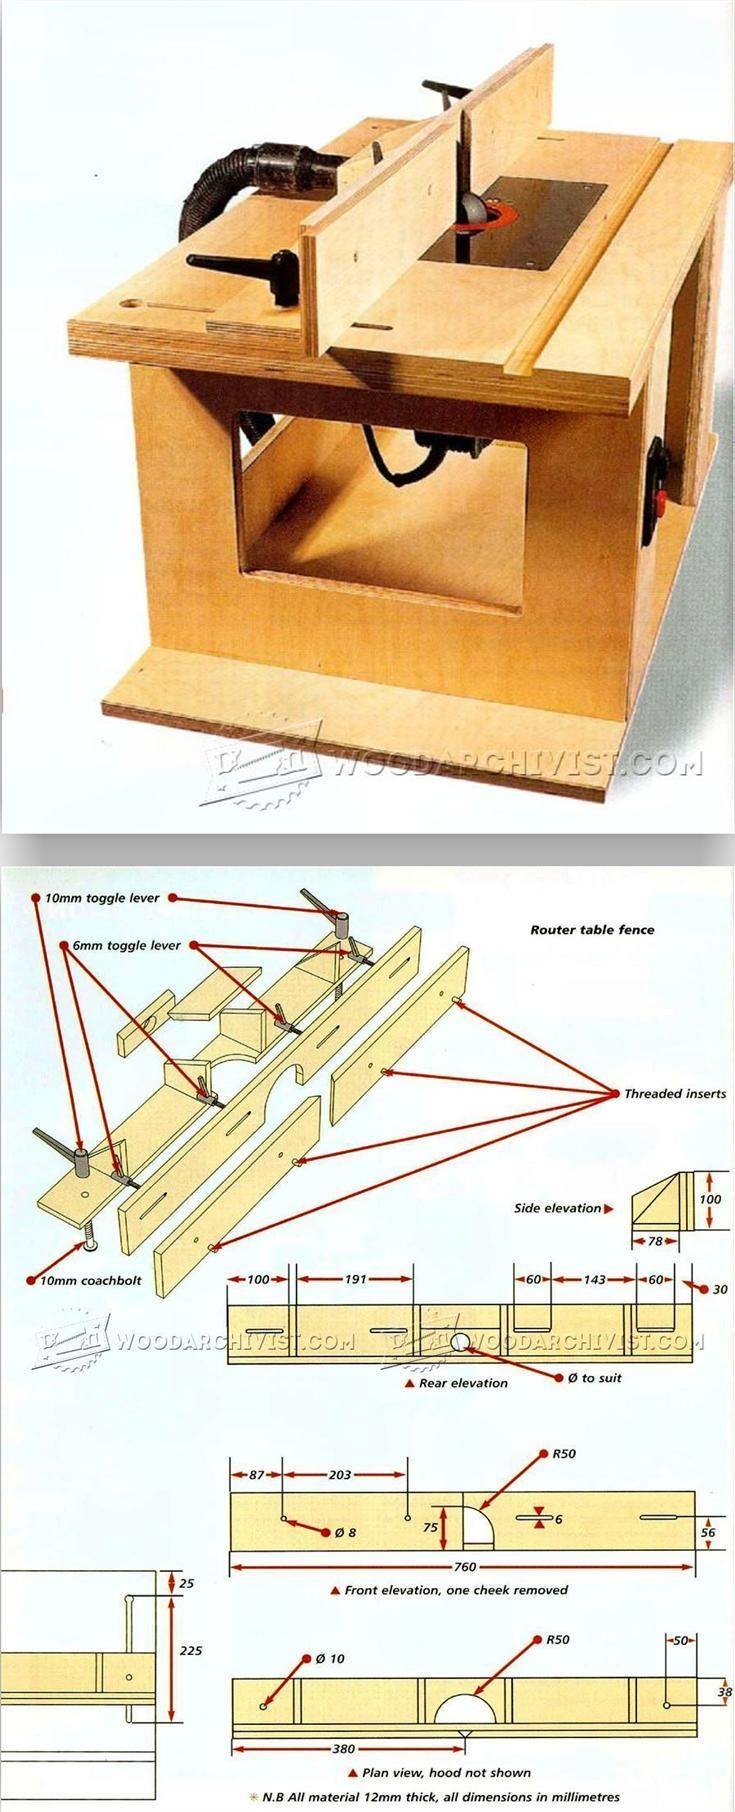 Diy router table fence router tips jigs and fixtures for Wood router ideas